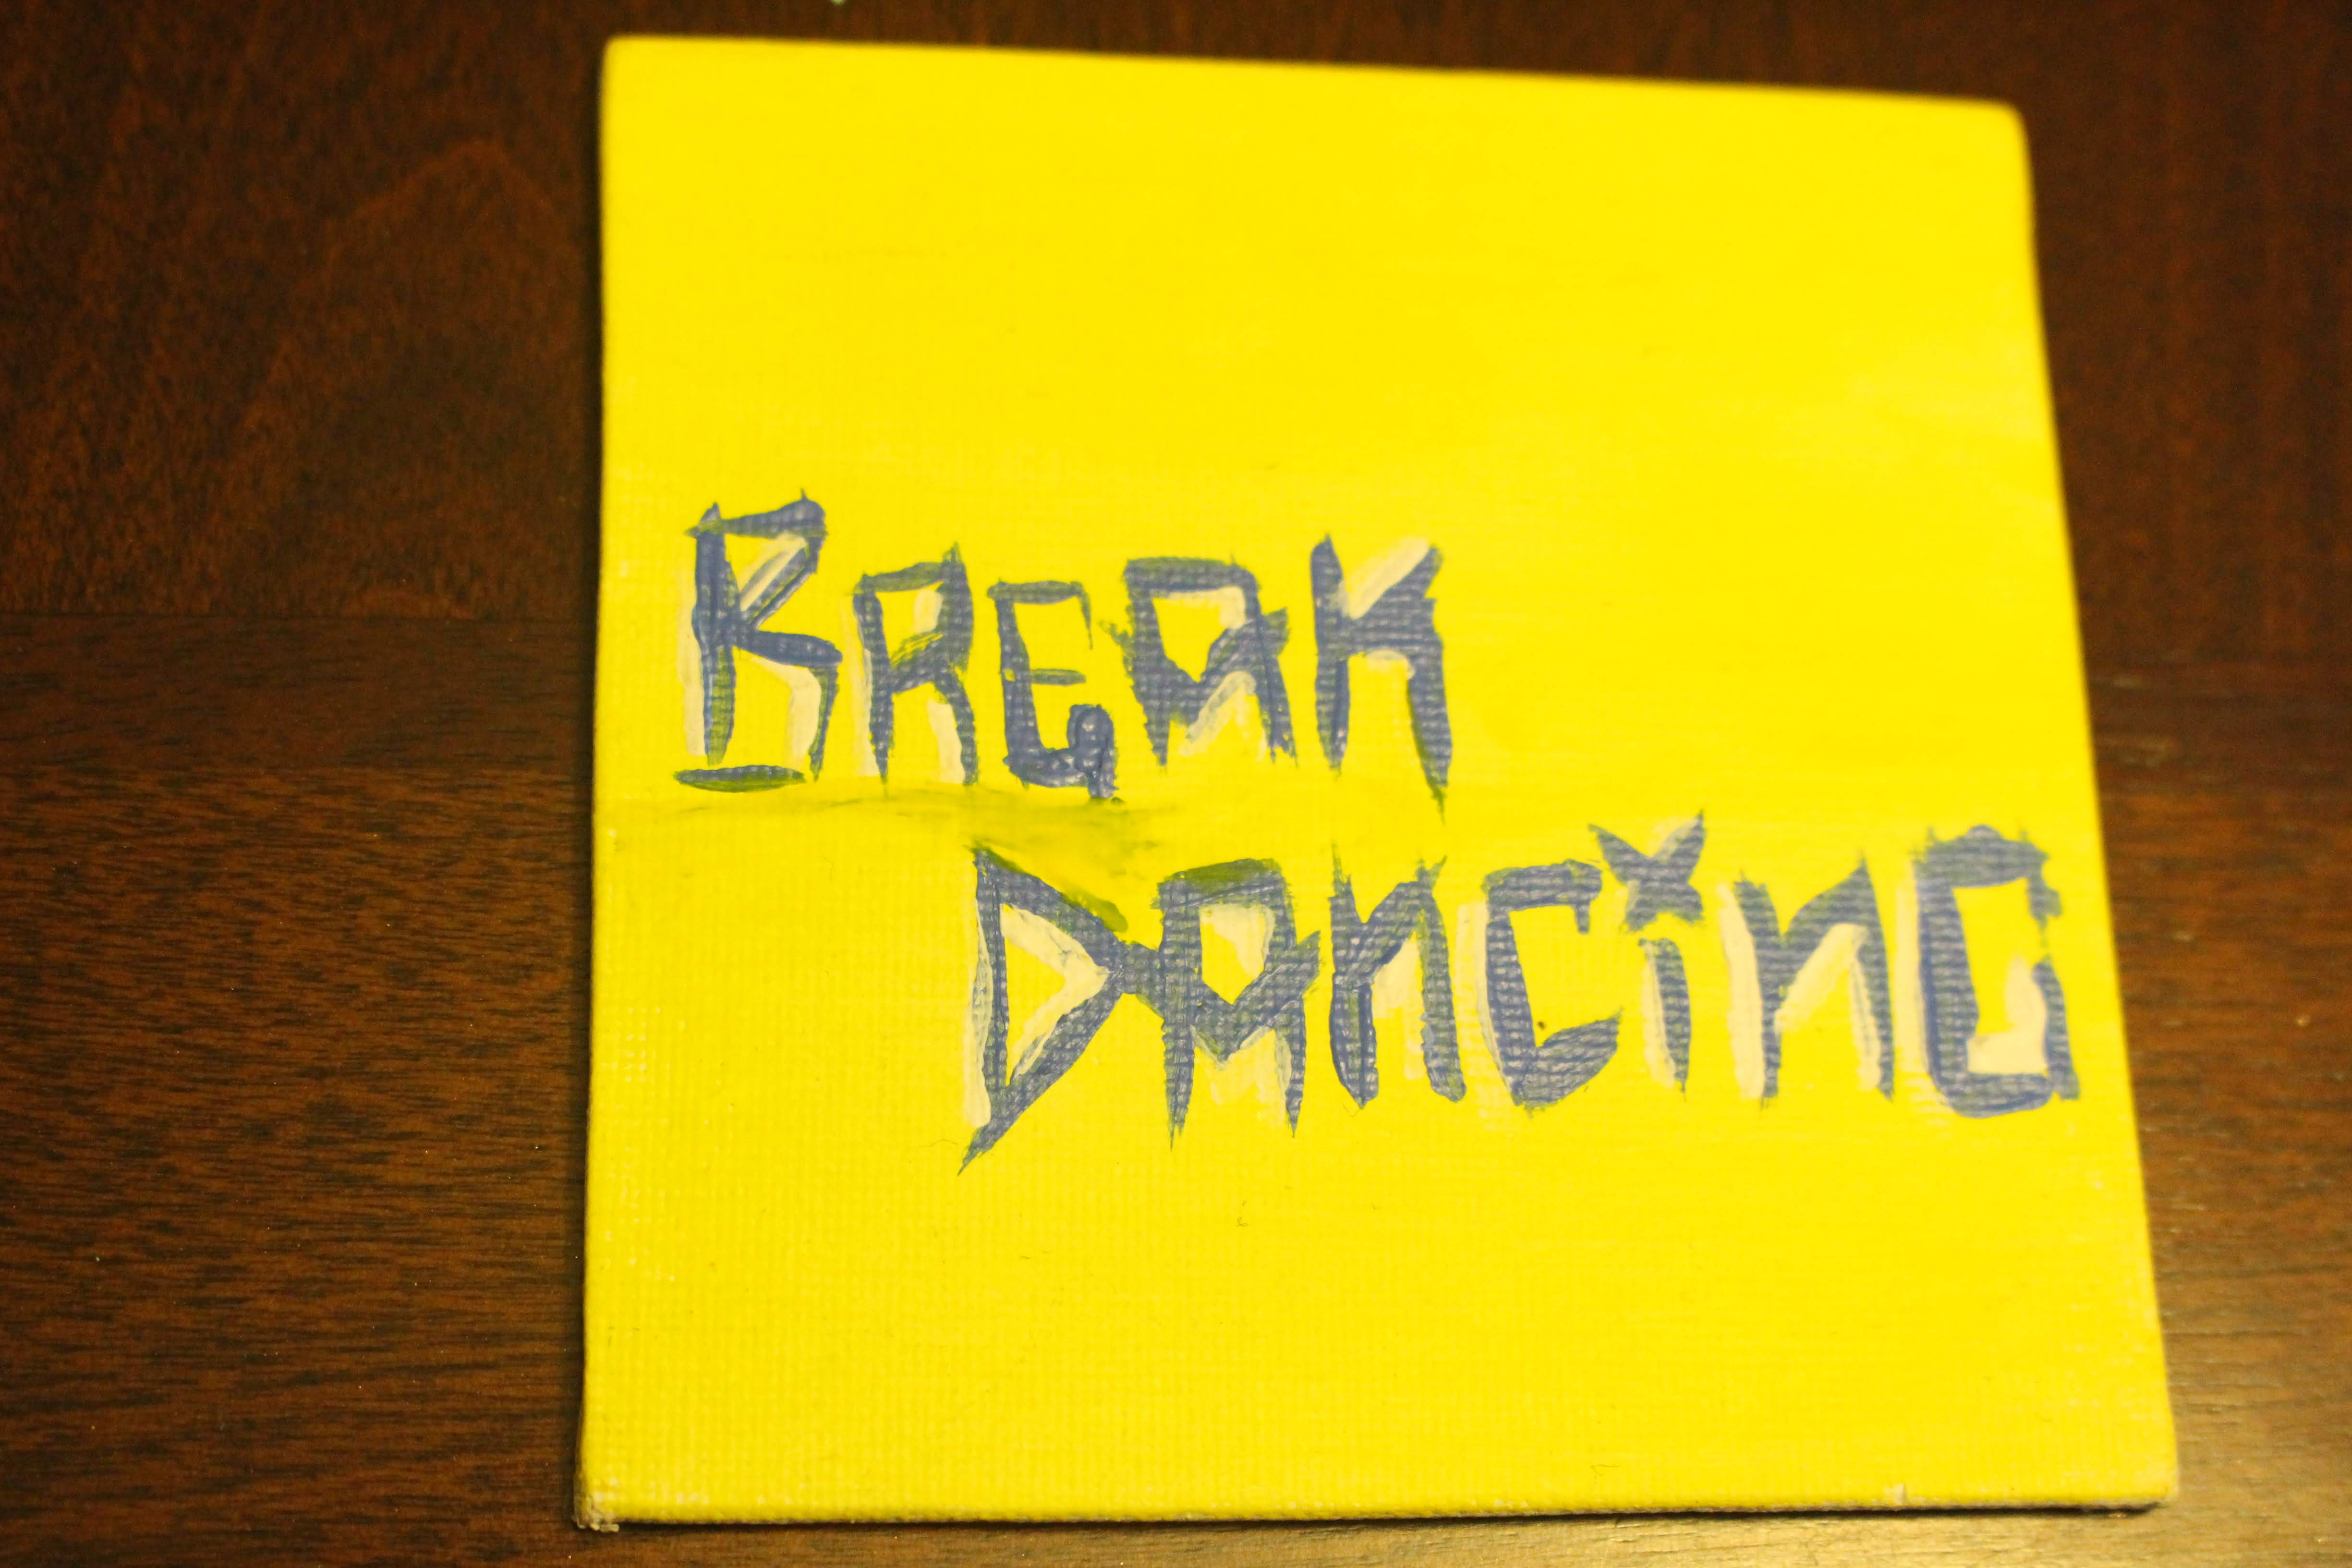 "This is a painting of the word 'break dancing' on a mini canvas. This word represents one of the 'four elements of hip hop""."